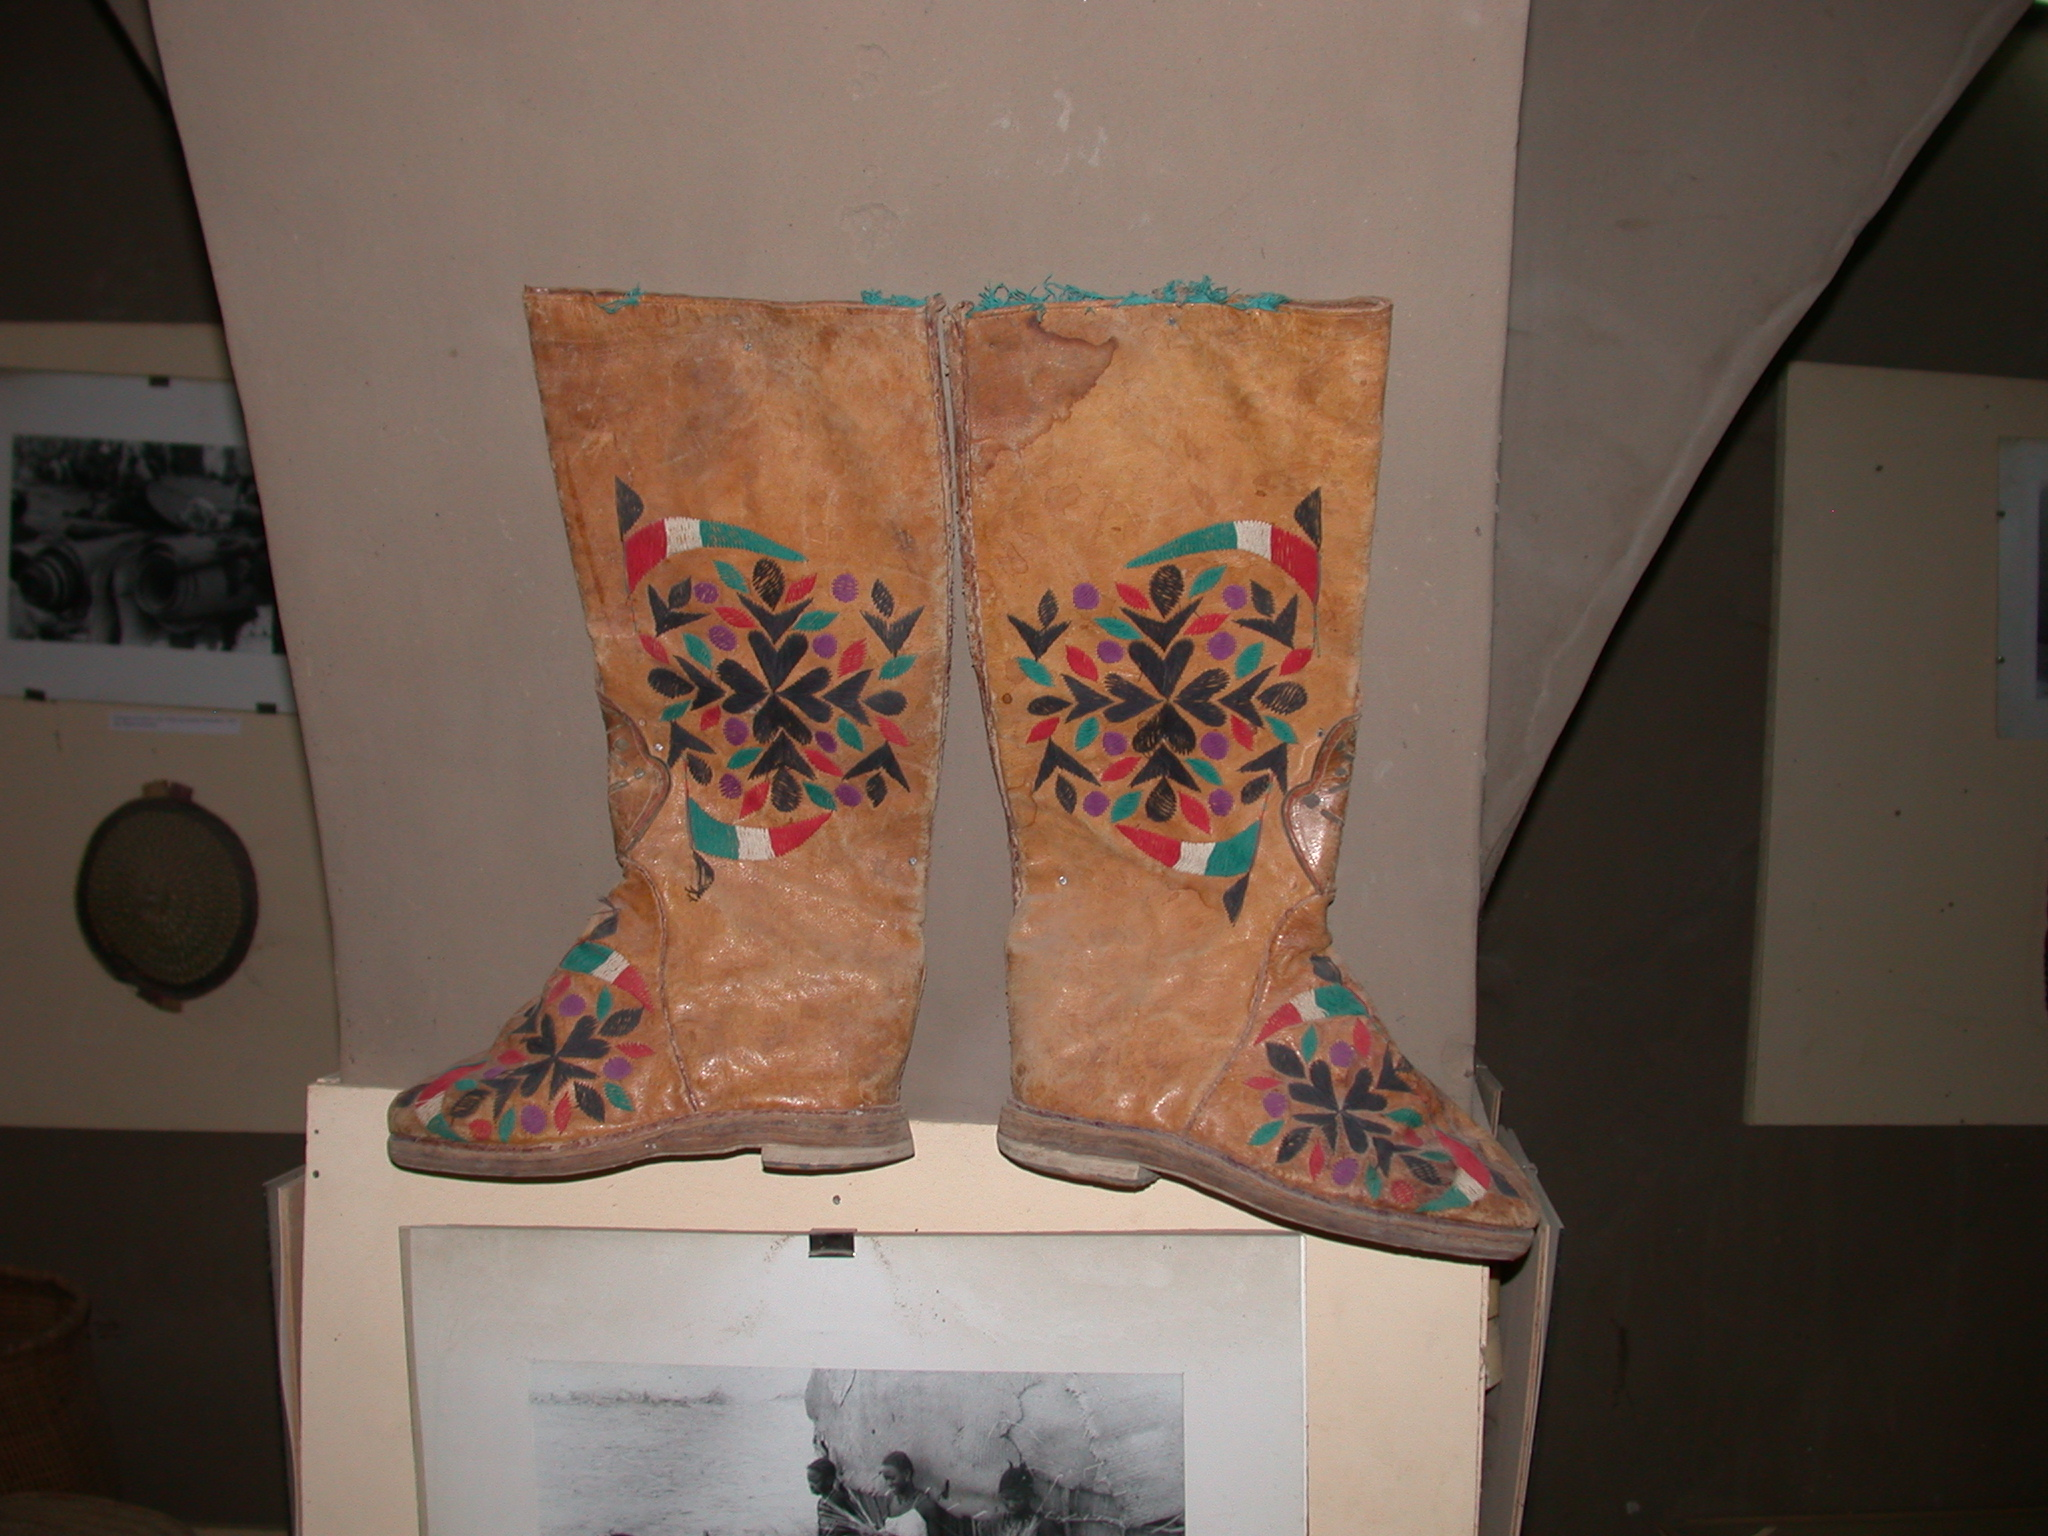 Decorated Boots, Timbuktu Ethnological Museum, Timbuktu, Mali